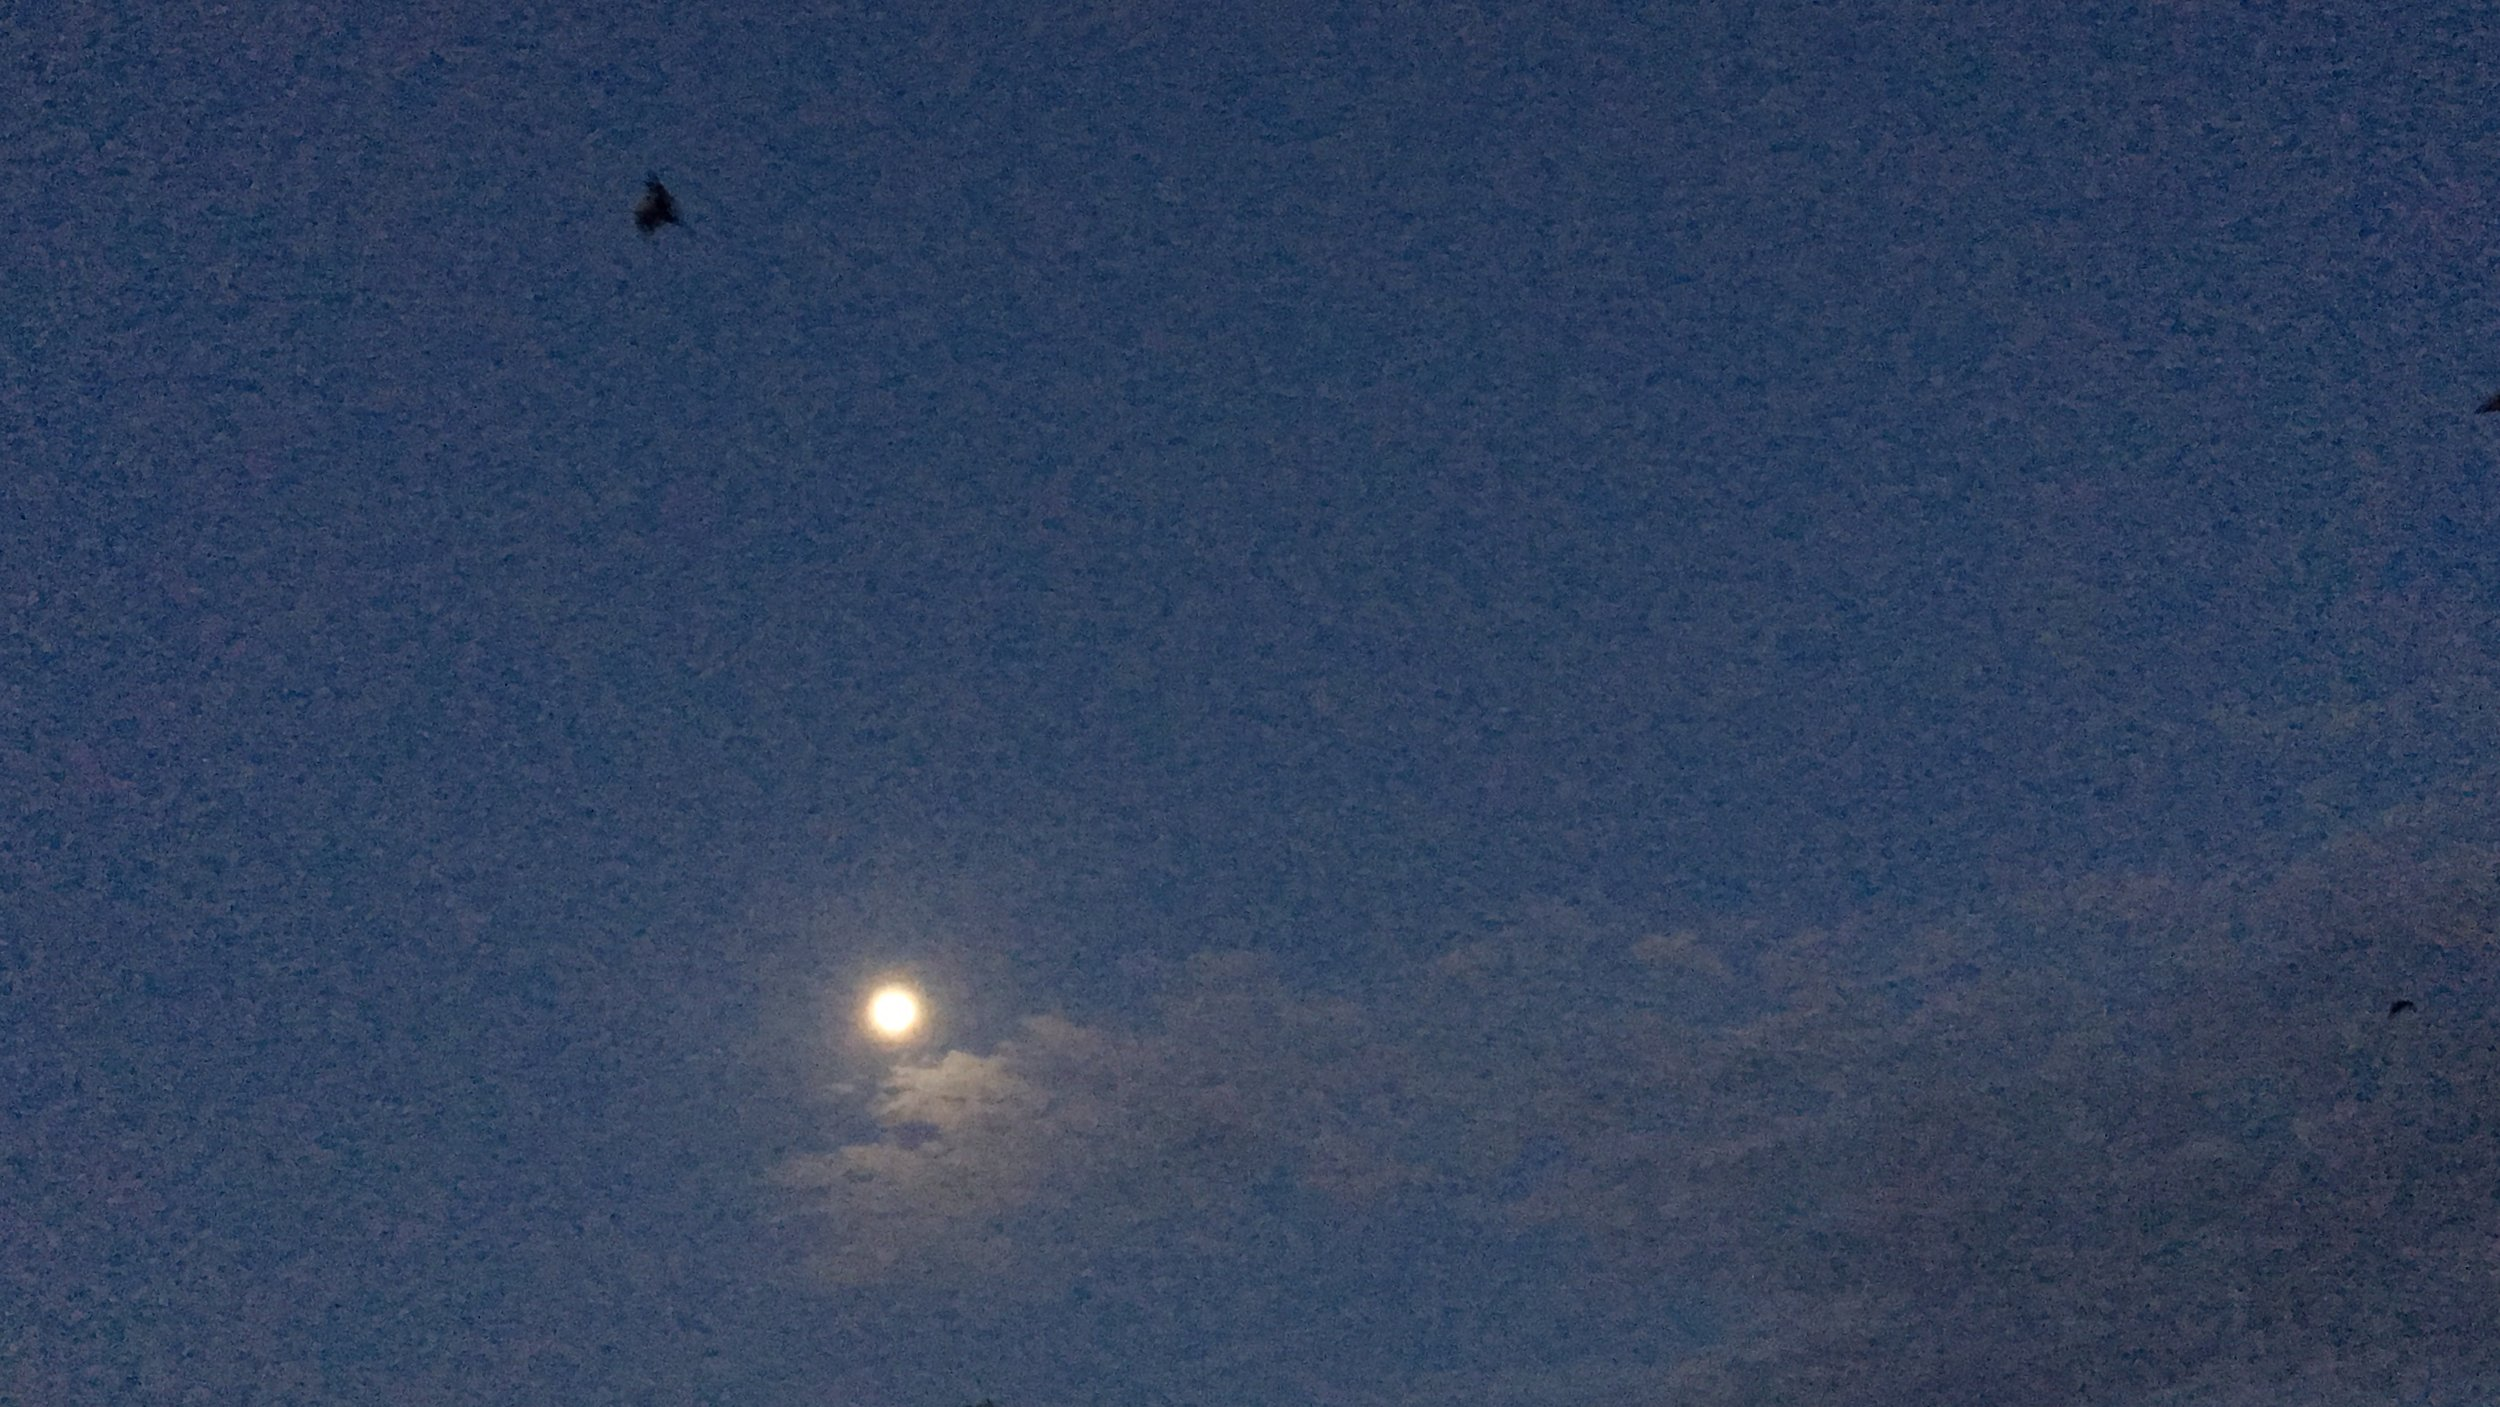 Batty full moon, Pemba. Photos: Kew.